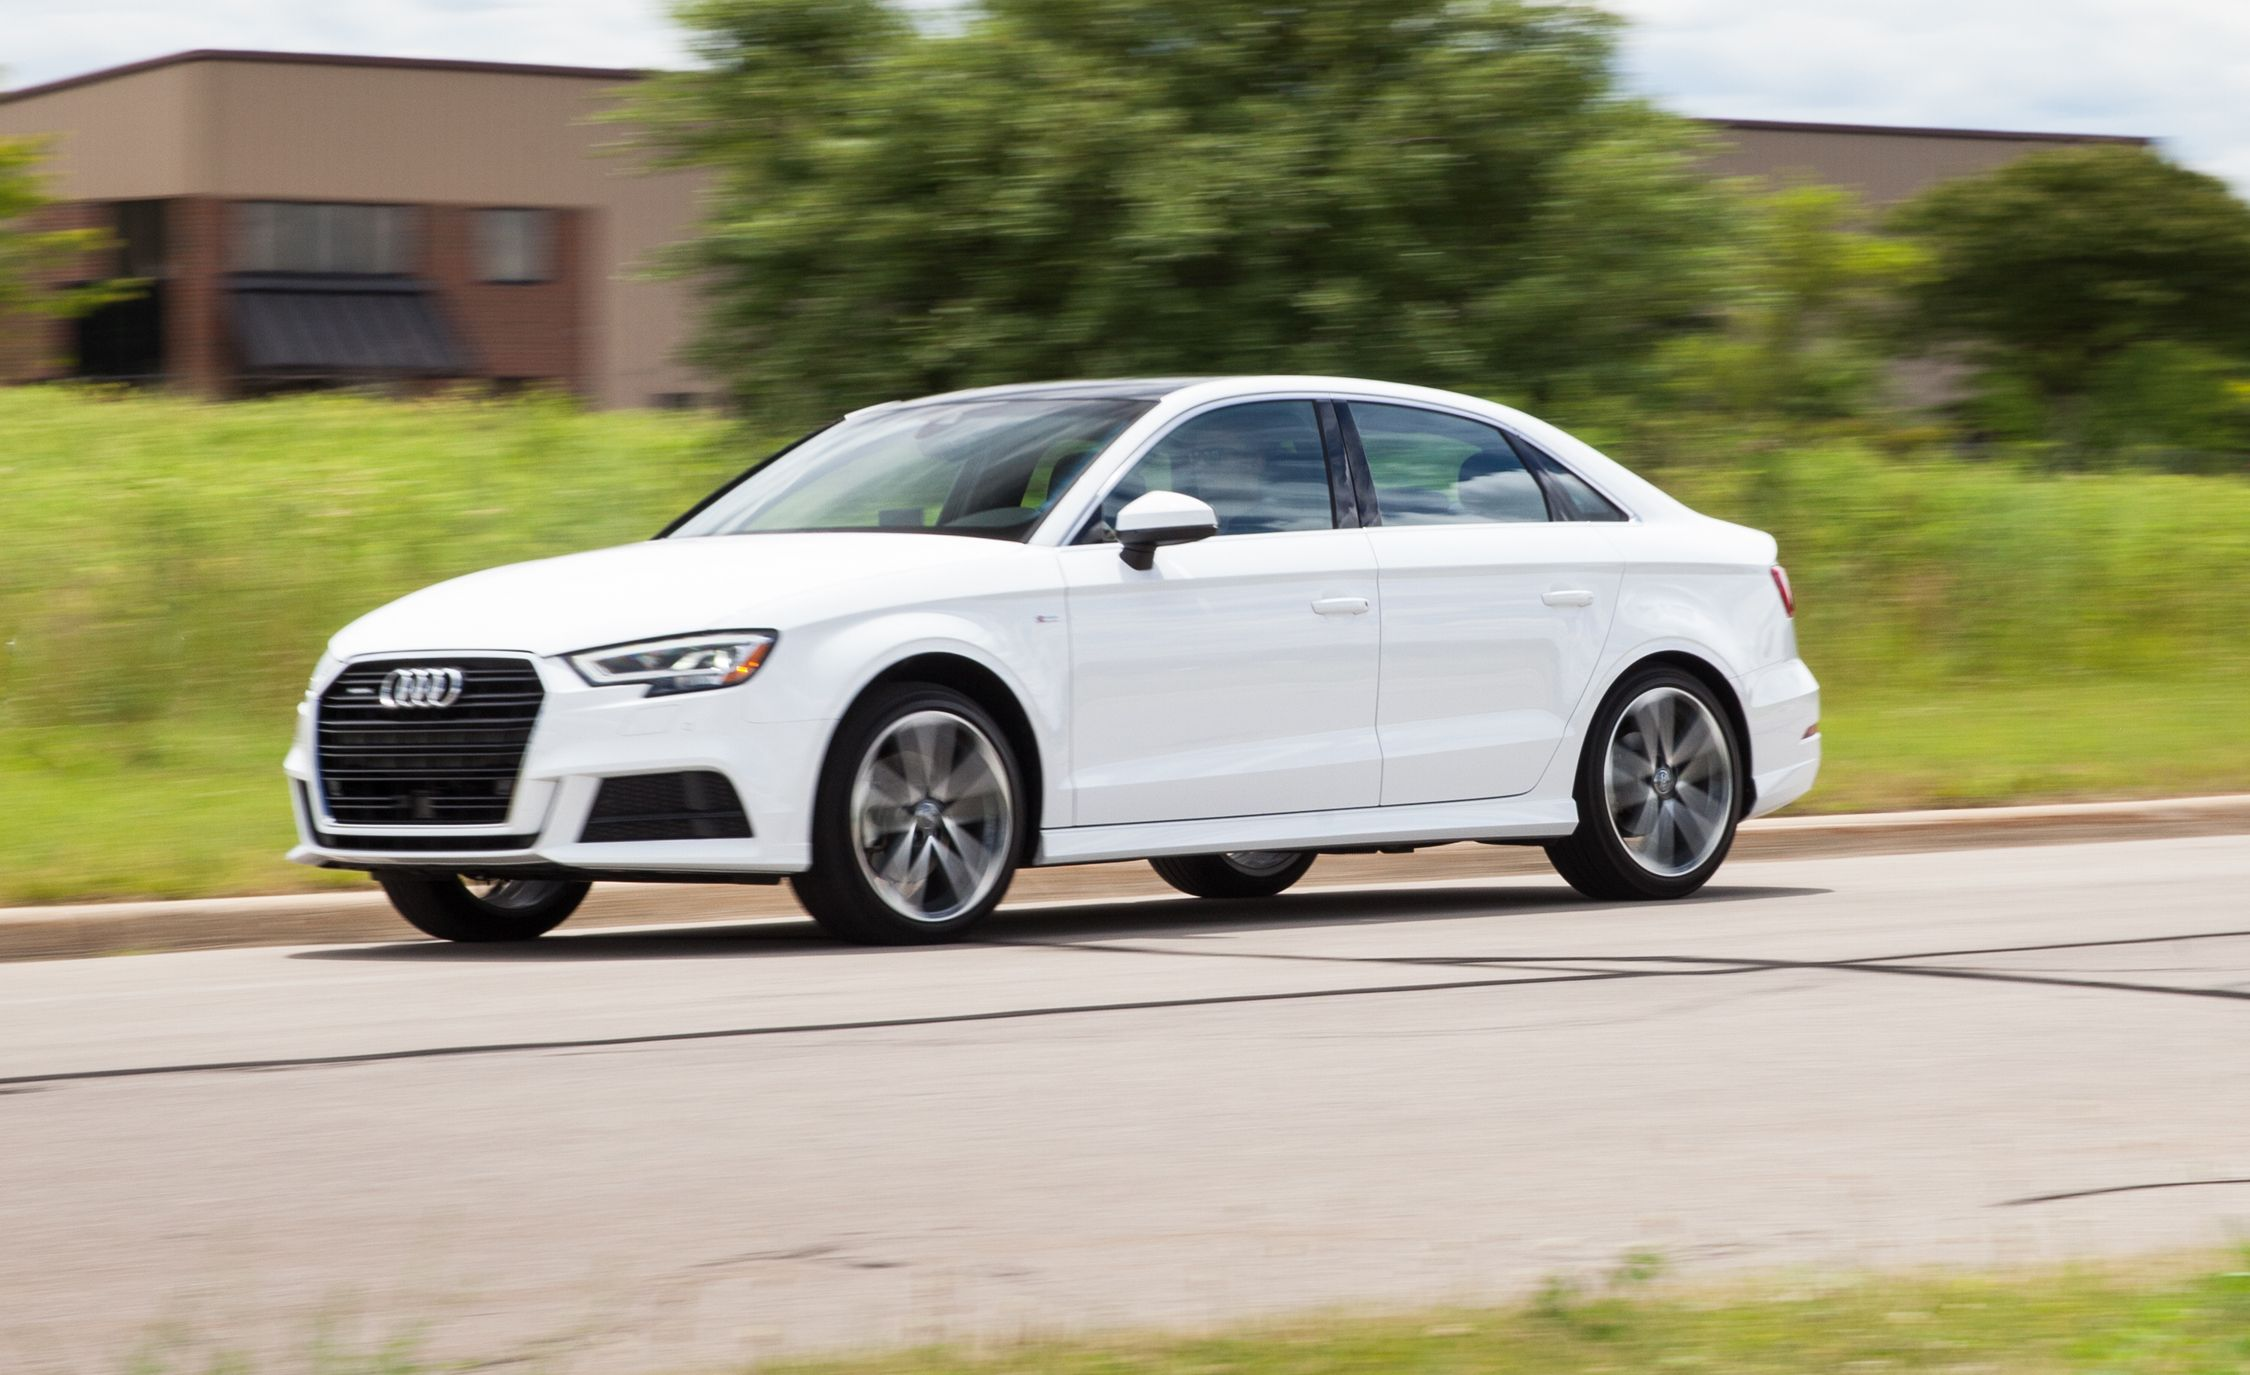 Audi A Fuel Economy And Driving Range Review Car And Driver - 2018 audi a3 msrp